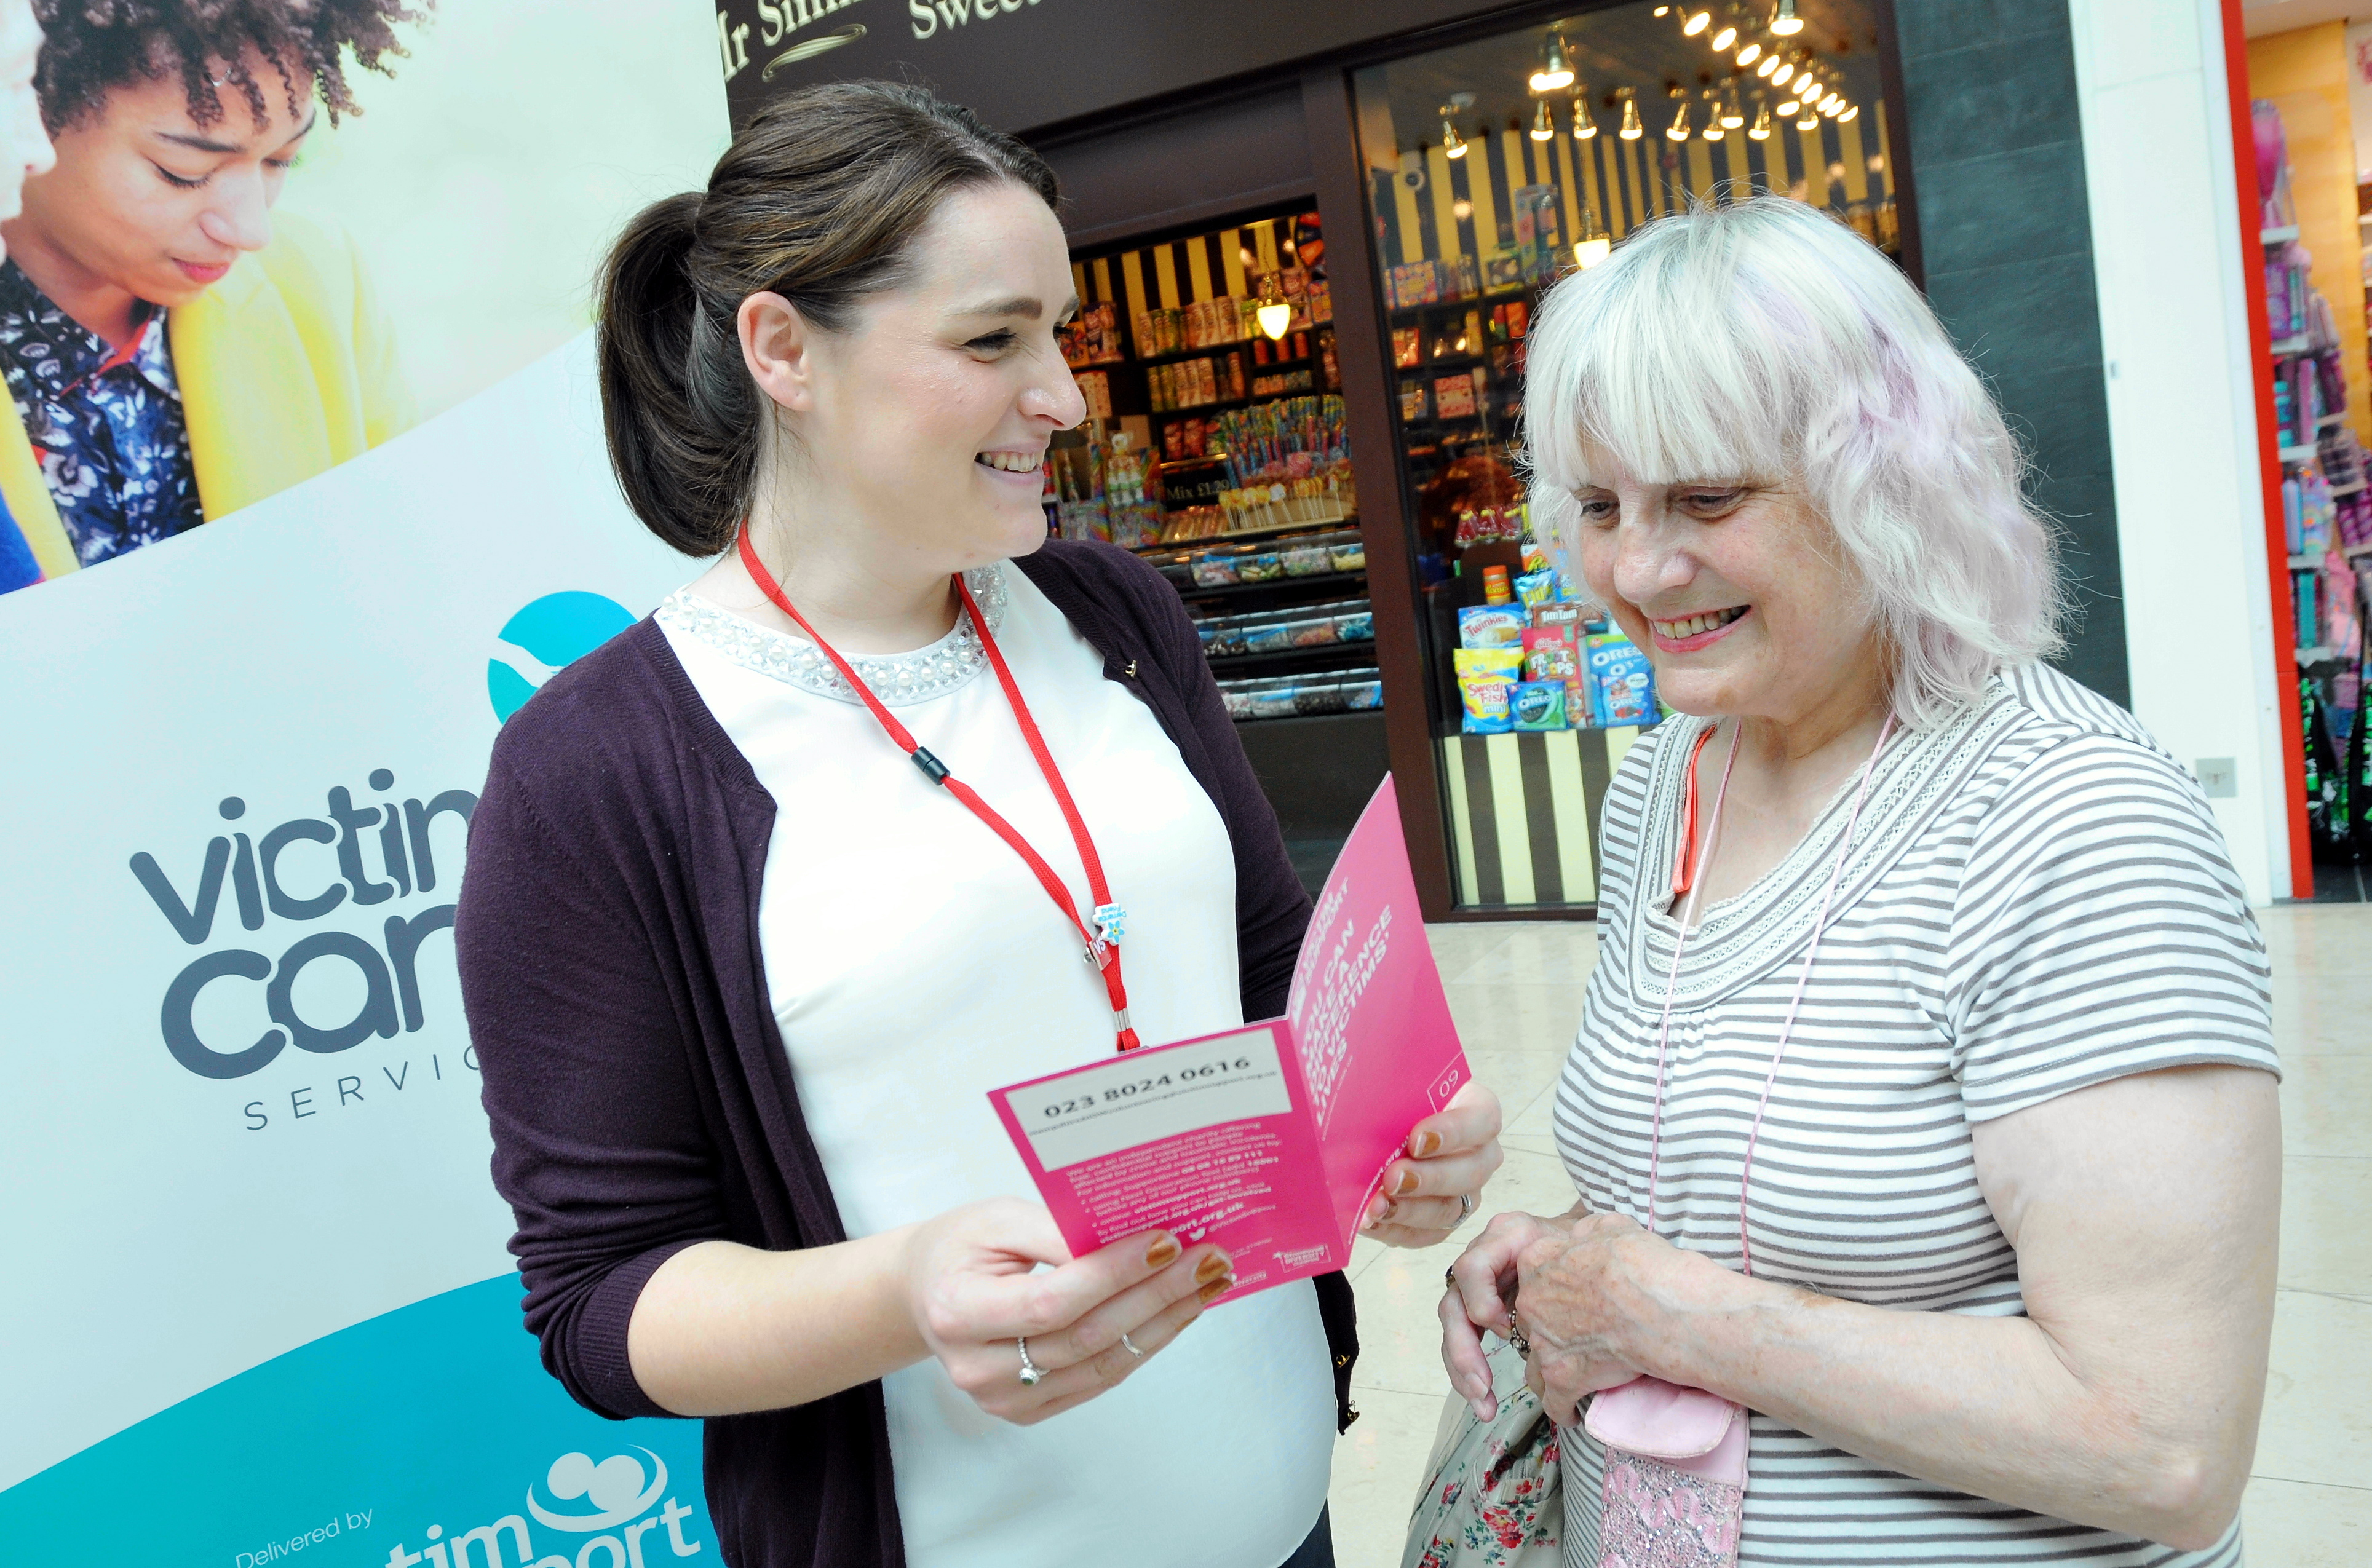 Victim Care Service Employee holding a leaflet talking to a member of the public during the event